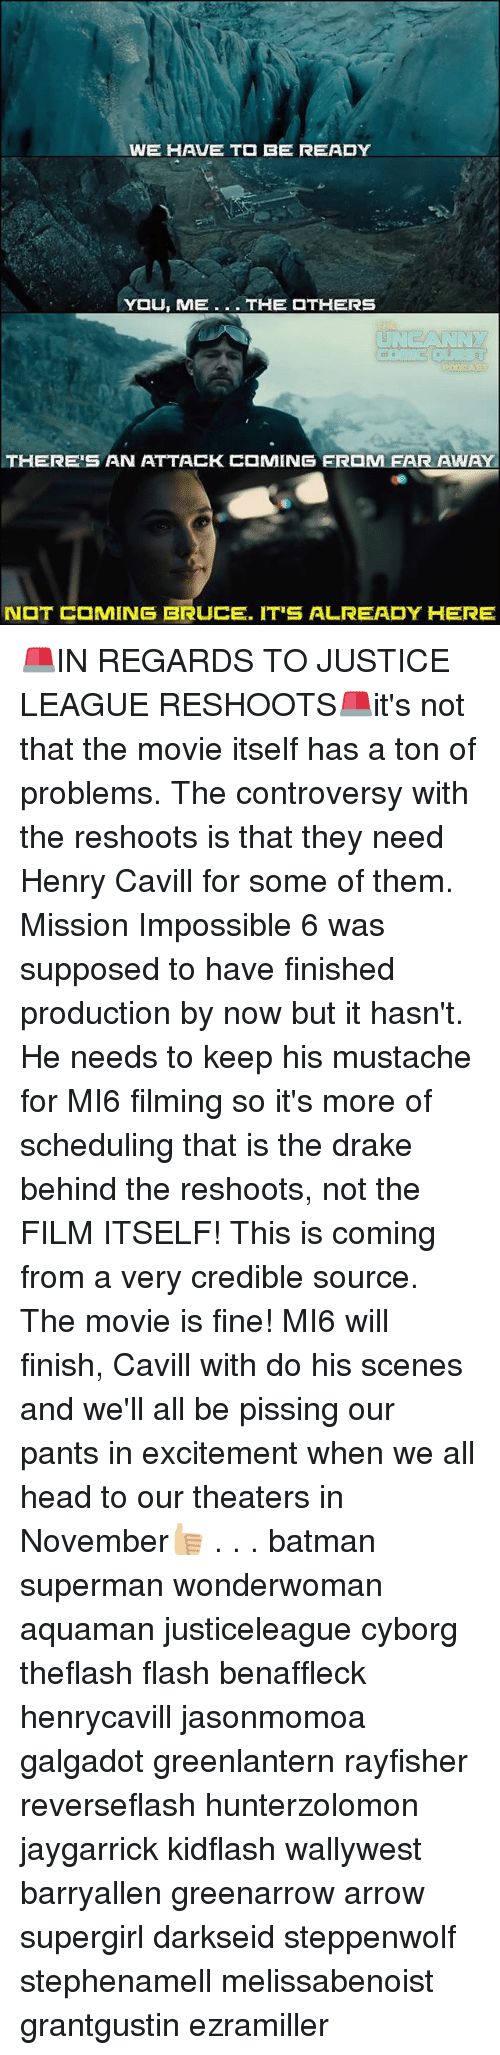 Minging: WE HAVE T  BE READY  THERE'S AN ATTACK  MING FR M FAR AWAY  N  T C MING BRUCE. IT'S ALREADY HERE 🚨IN REGARDS TO JUSTICE LEAGUE RESHOOTS🚨it's not that the movie itself has a ton of problems. The controversy with the reshoots is that they need Henry Cavill for some of them. Mission Impossible 6 was supposed to have finished production by now but it hasn't. He needs to keep his mustache for MI6 filming so it's more of scheduling that is the drake behind the reshoots, not the FILM ITSELF! This is coming from a very credible source. The movie is fine! MI6 will finish, Cavill with do his scenes and we'll all be pissing our pants in excitement when we all head to our theaters in November👍🏼 . . . batman superman wonderwoman aquaman justiceleague cyborg theflash flash benaffleck henrycavill jasonmomoa galgadot greenlantern rayfisher reverseflash hunterzolomon jaygarrick kidflash wallywest barryallen greenarrow arrow supergirl darkseid steppenwolf stephenamell melissabenoist grantgustin ezramiller